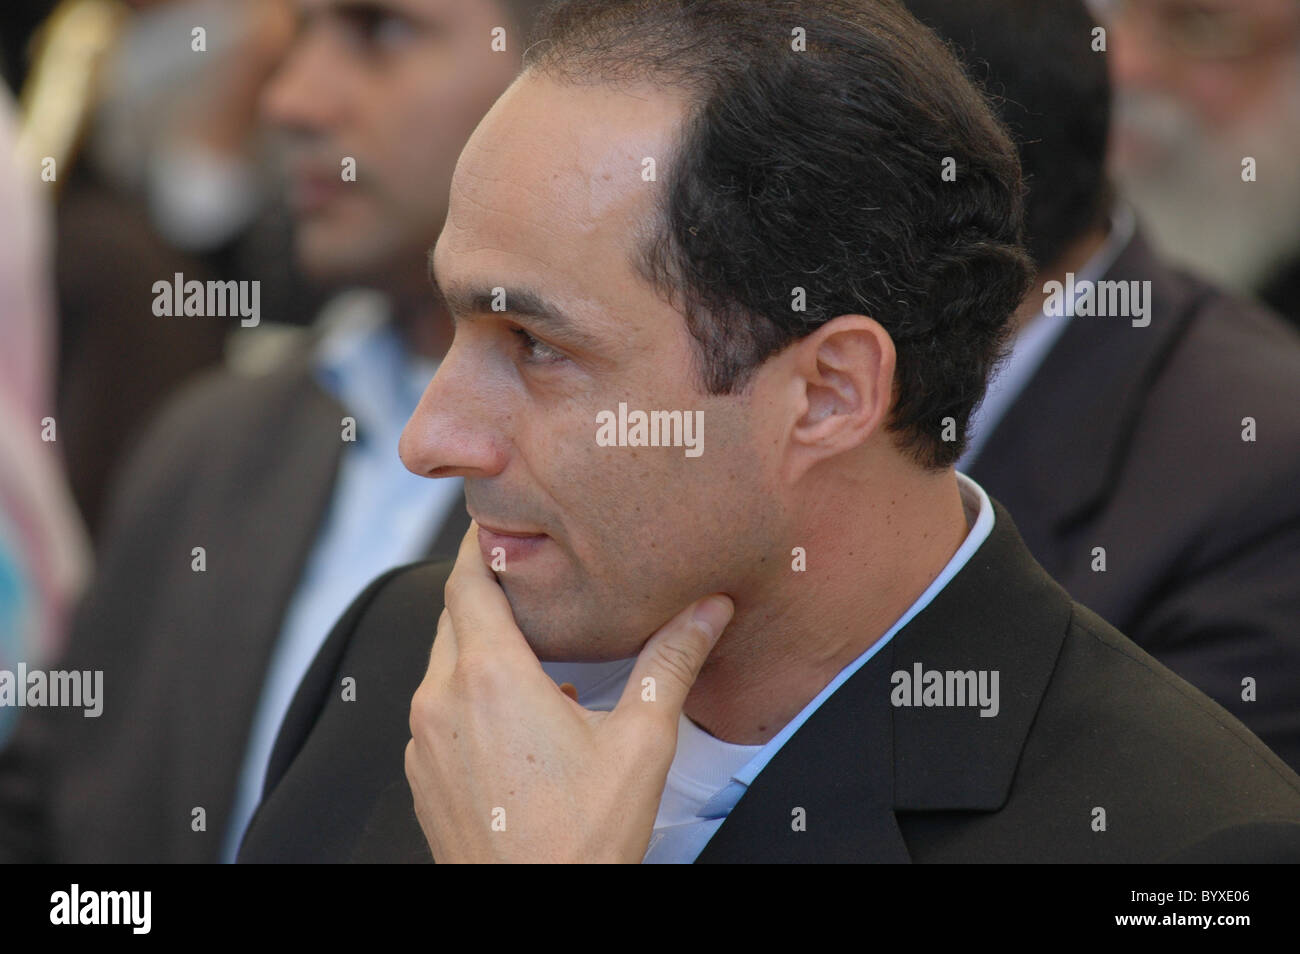 Gamal Mubarak attends a re-election rally in Minya for Egyptian President Hosni Mubarak durinig the 2005 presidential - Stock Image